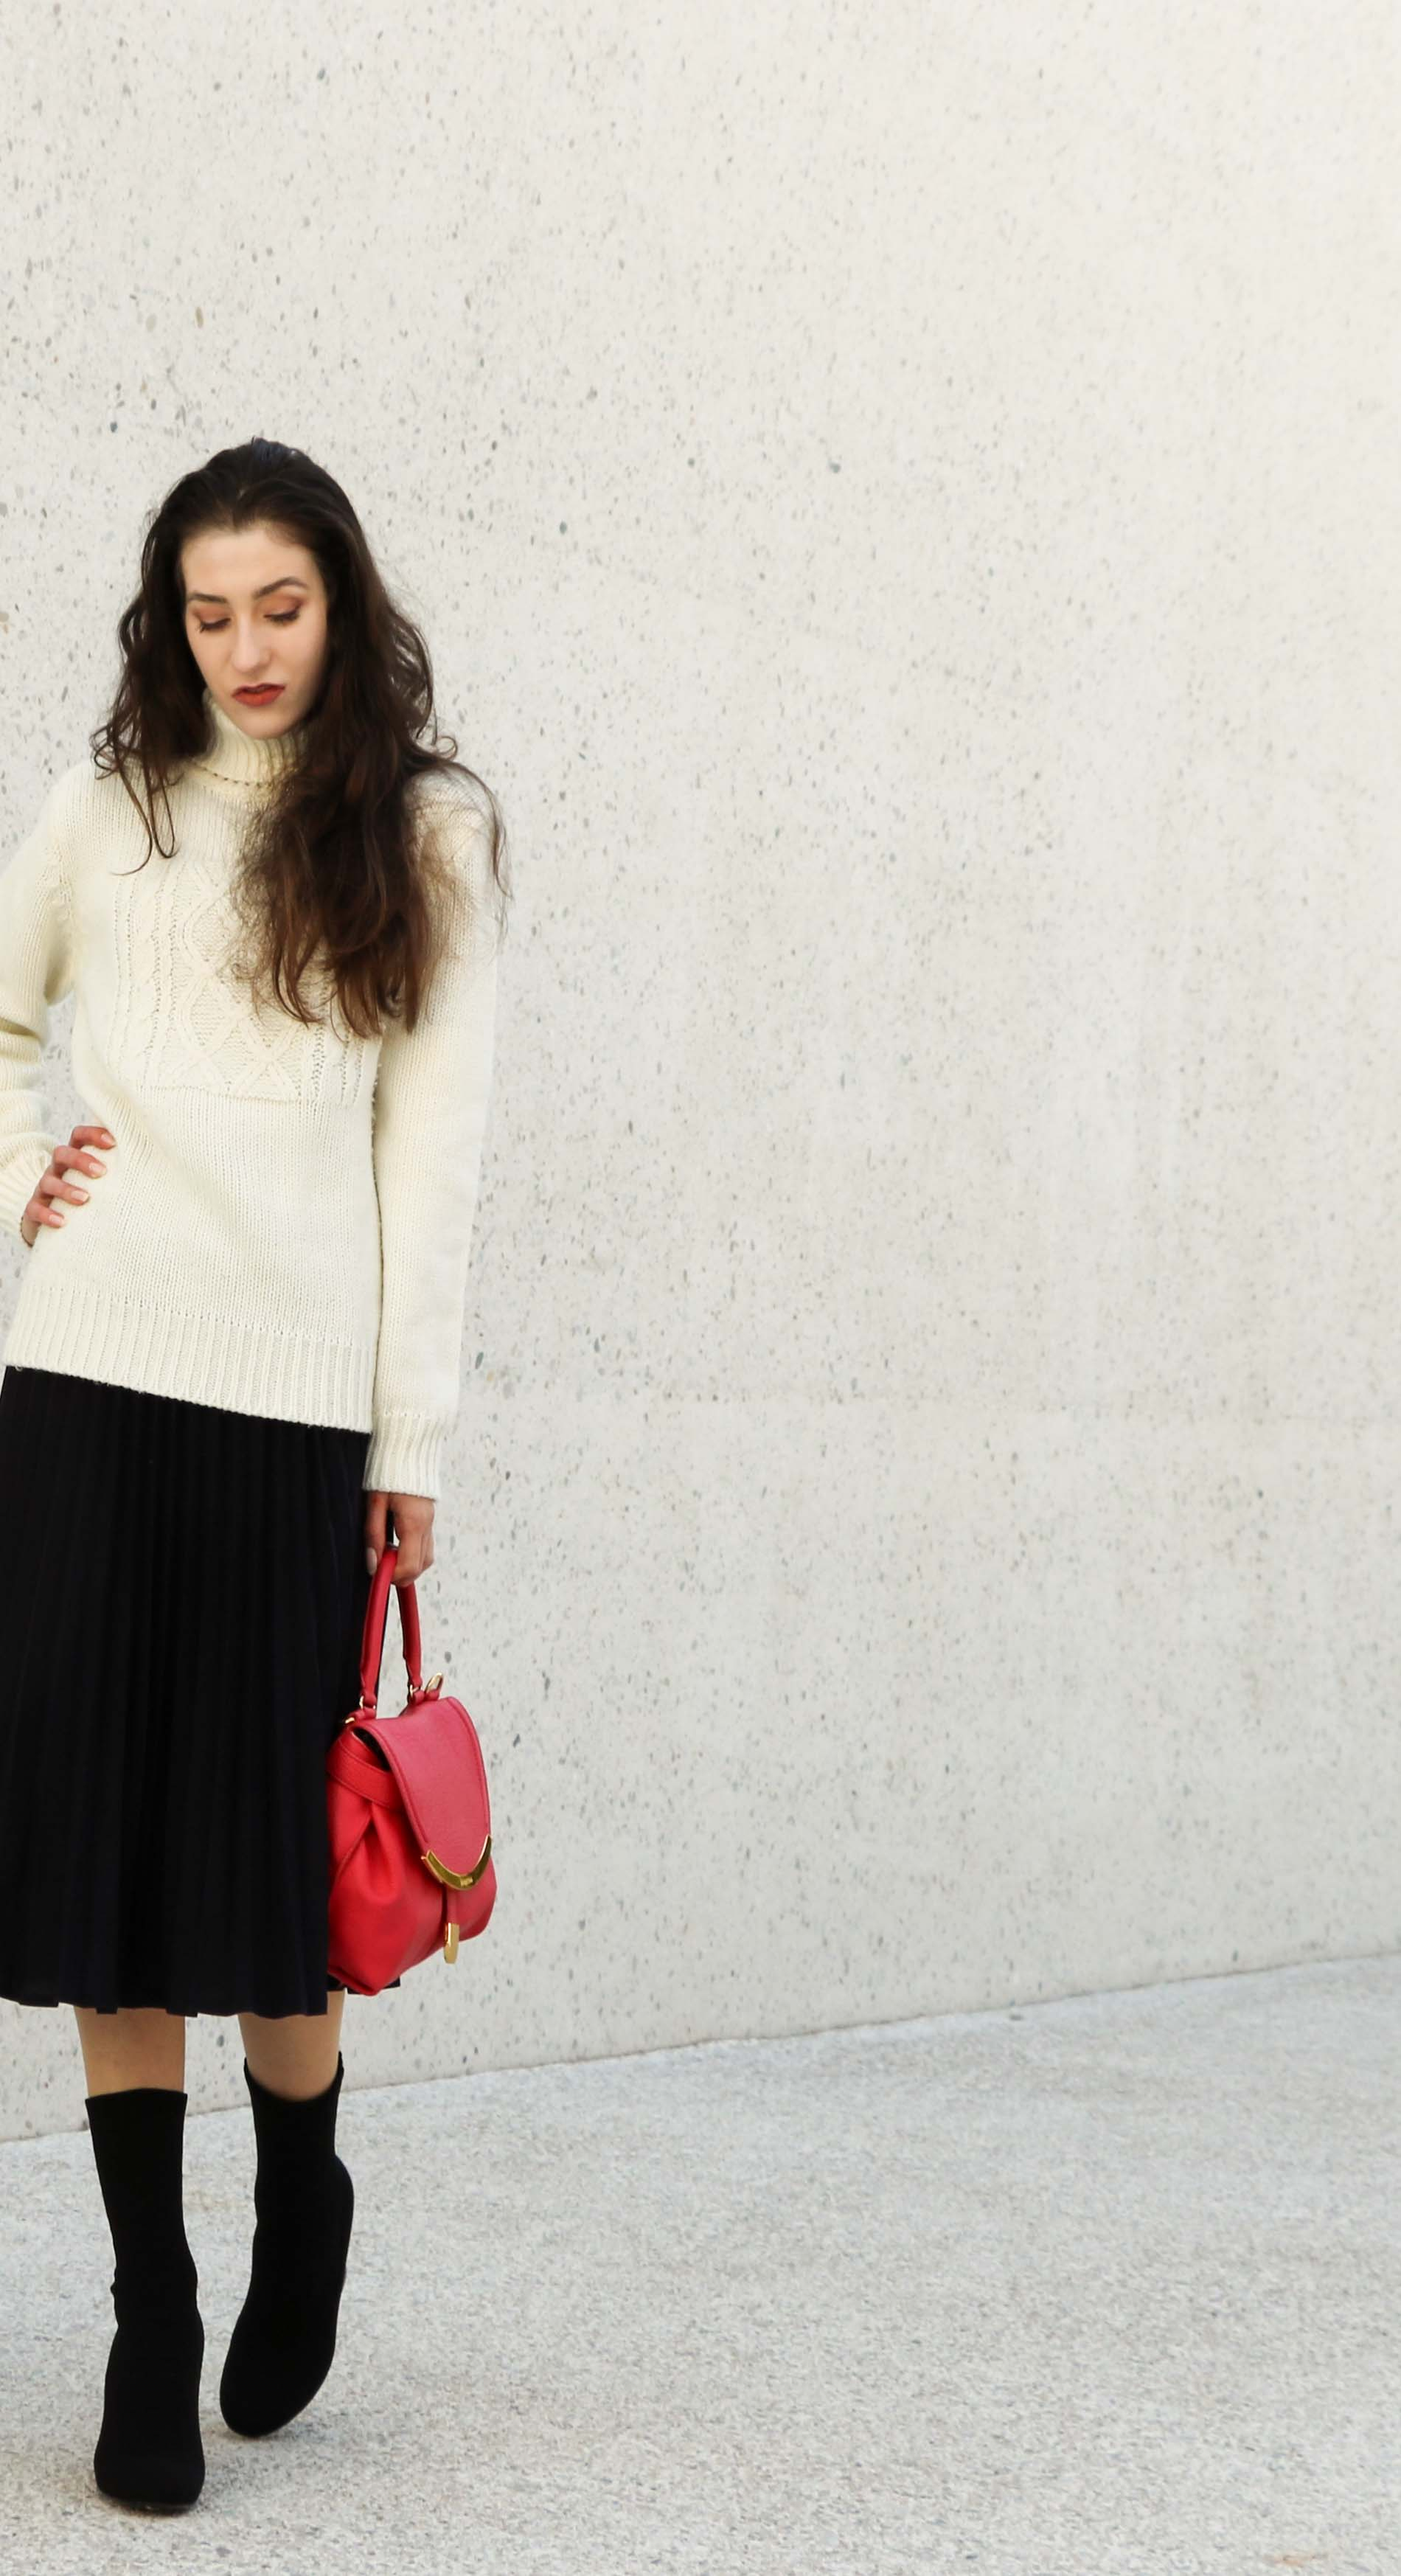 Fashion Blogger Veronika Lipar of Brunette from Wall Street dressed in white oversized cable knit sweater, black midi skirt with pleats, pink top handle bag from See by Chloe and black sock boots from Elena Iachi